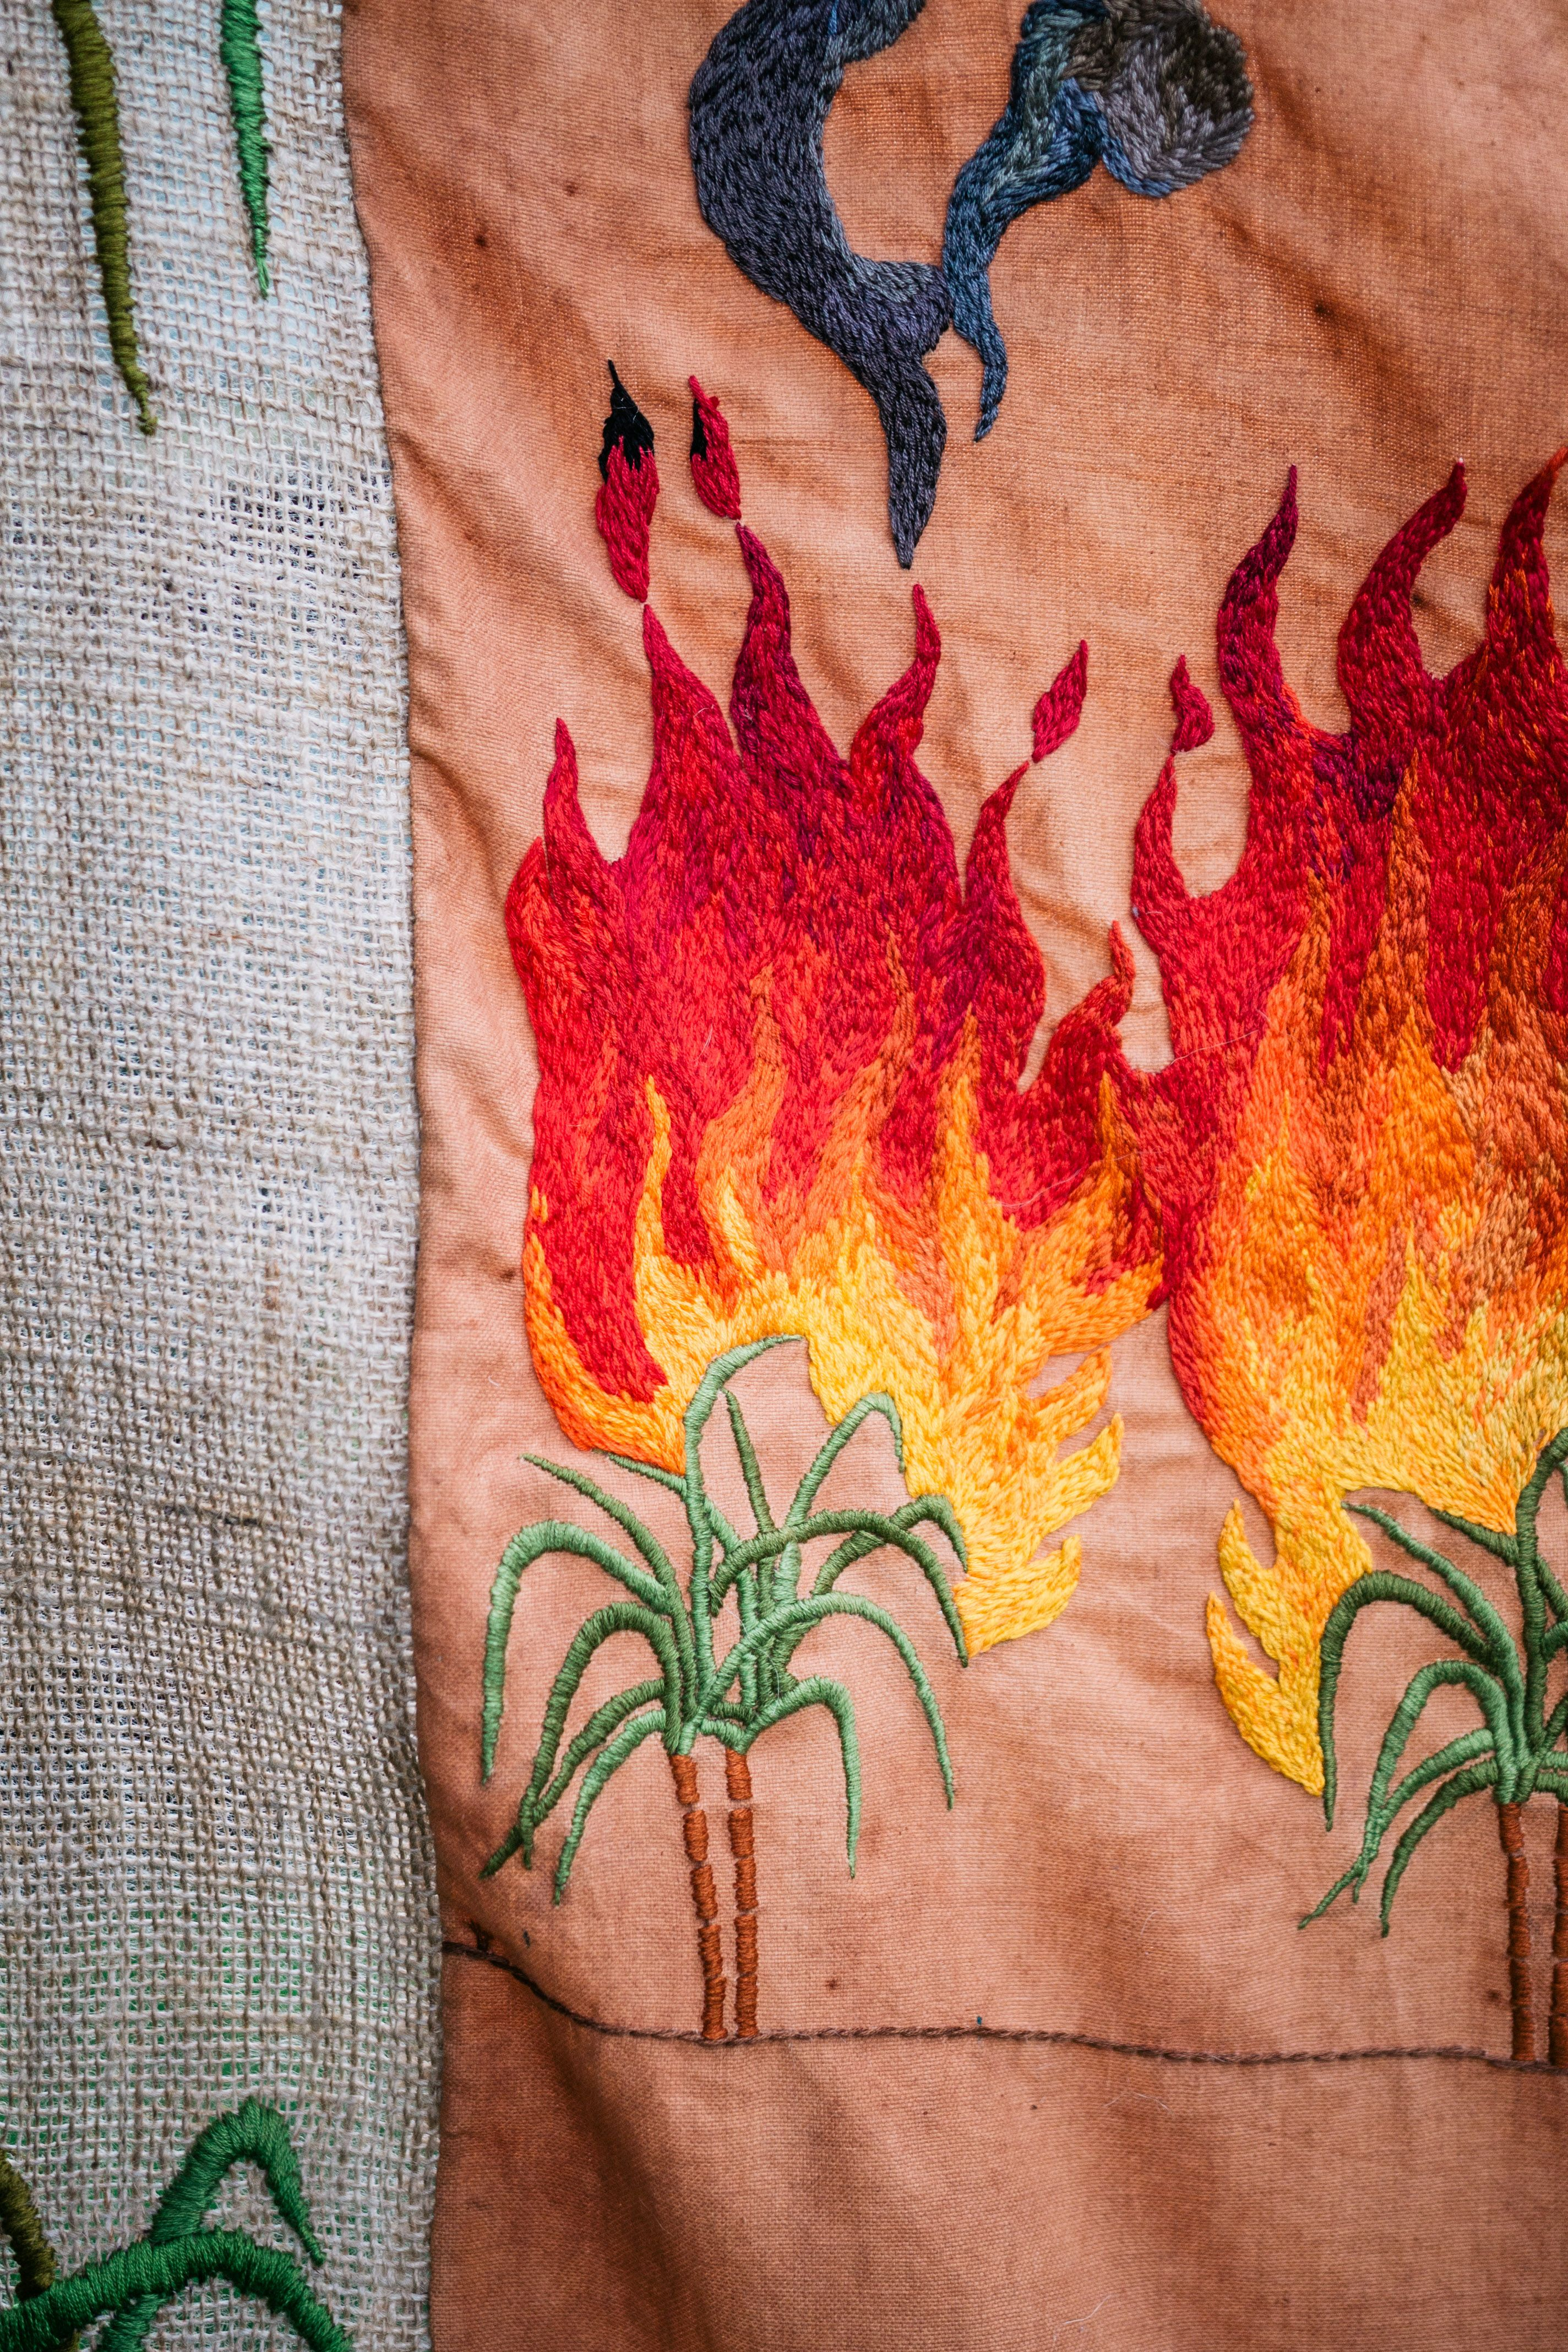 Quishile Charan, Burning Ganna Khet, 2021, cotton, embroidery thread, hessian sacks, natural dye: avocados, 153cm by 152cm. Close up of embroidery. Image taken by: Matavai Taulangau.